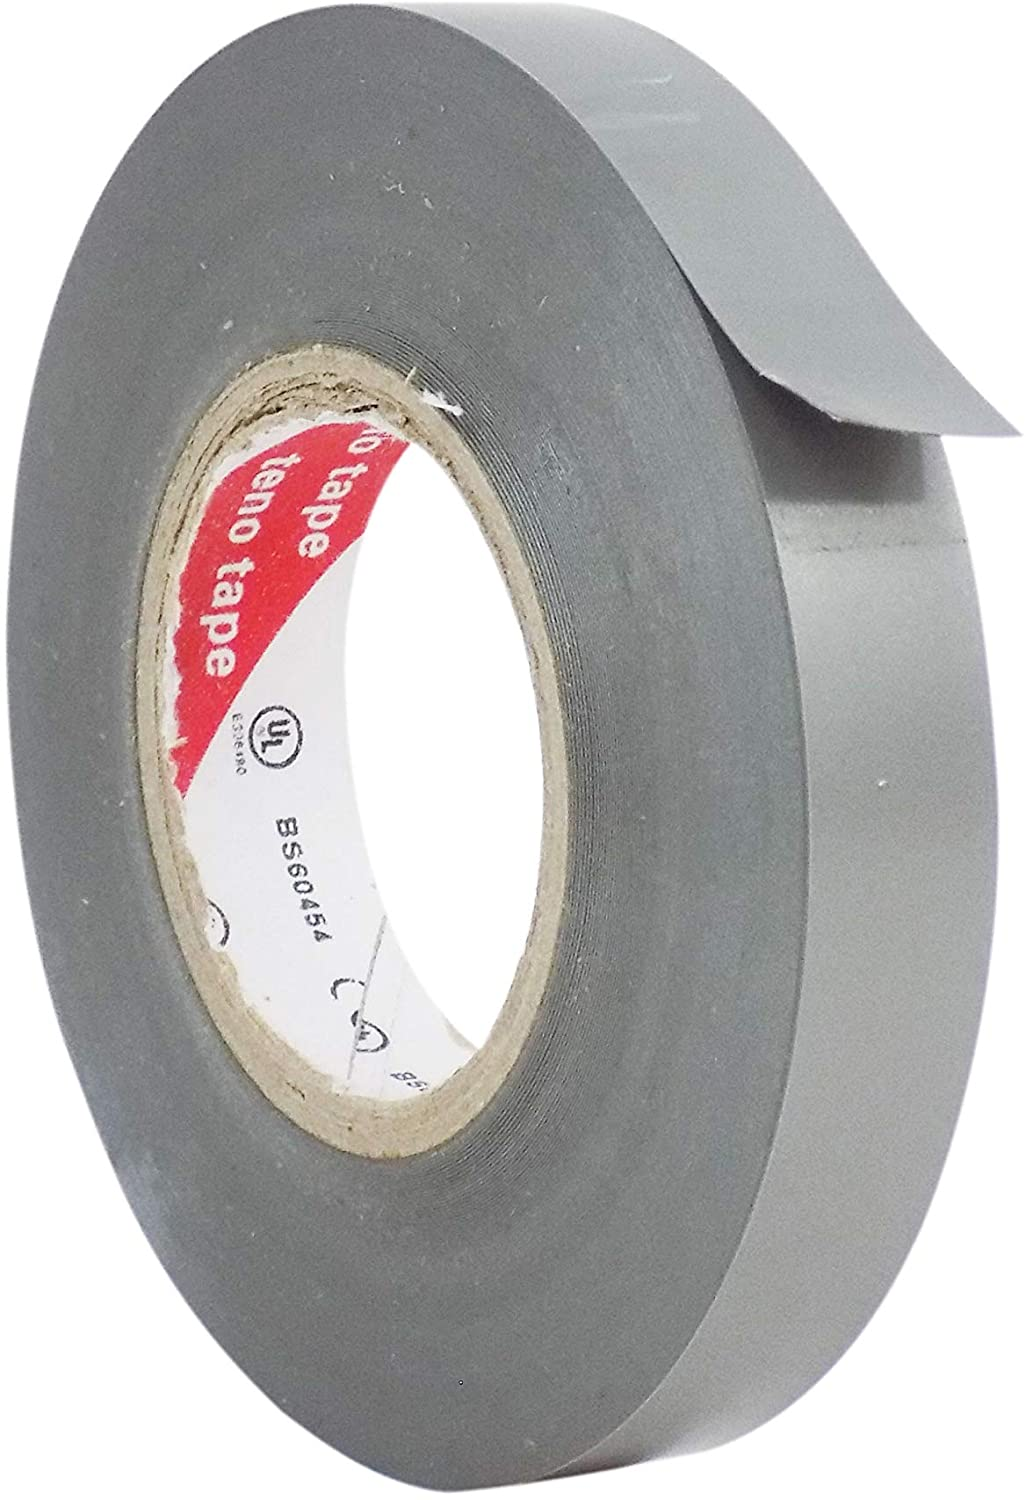 WOD ETC766 Professional Grade General Purpose Gray Electrical Tape UL/CSA listed core. Vinyl Rubber Adhesive Electrical Tape: 1/2 inch X 66 ft - Use At No More Than 600V & 176F (Pack of 1)